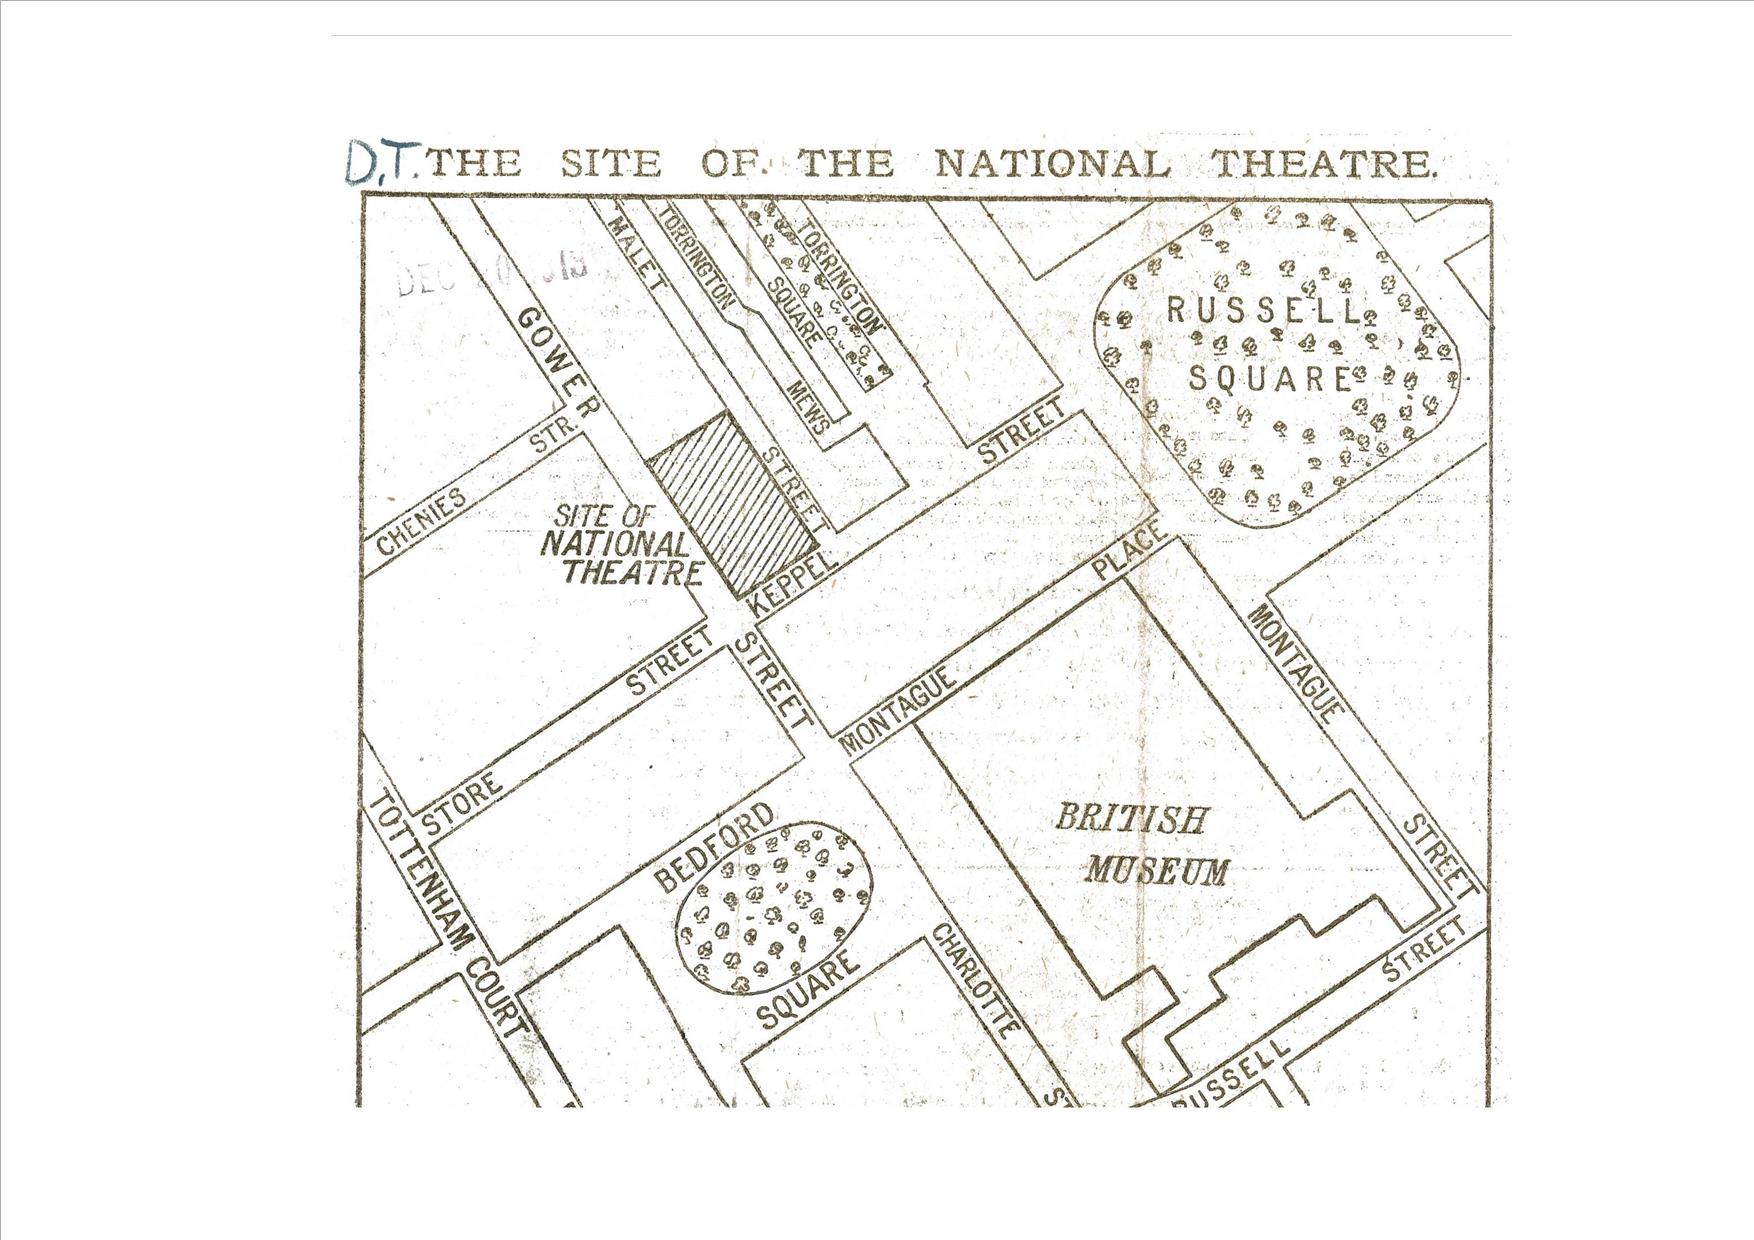 Harley granville barker argued that people would set out deliberately to visit the theatre rather than drop in by chance 'a place they will decide upon at